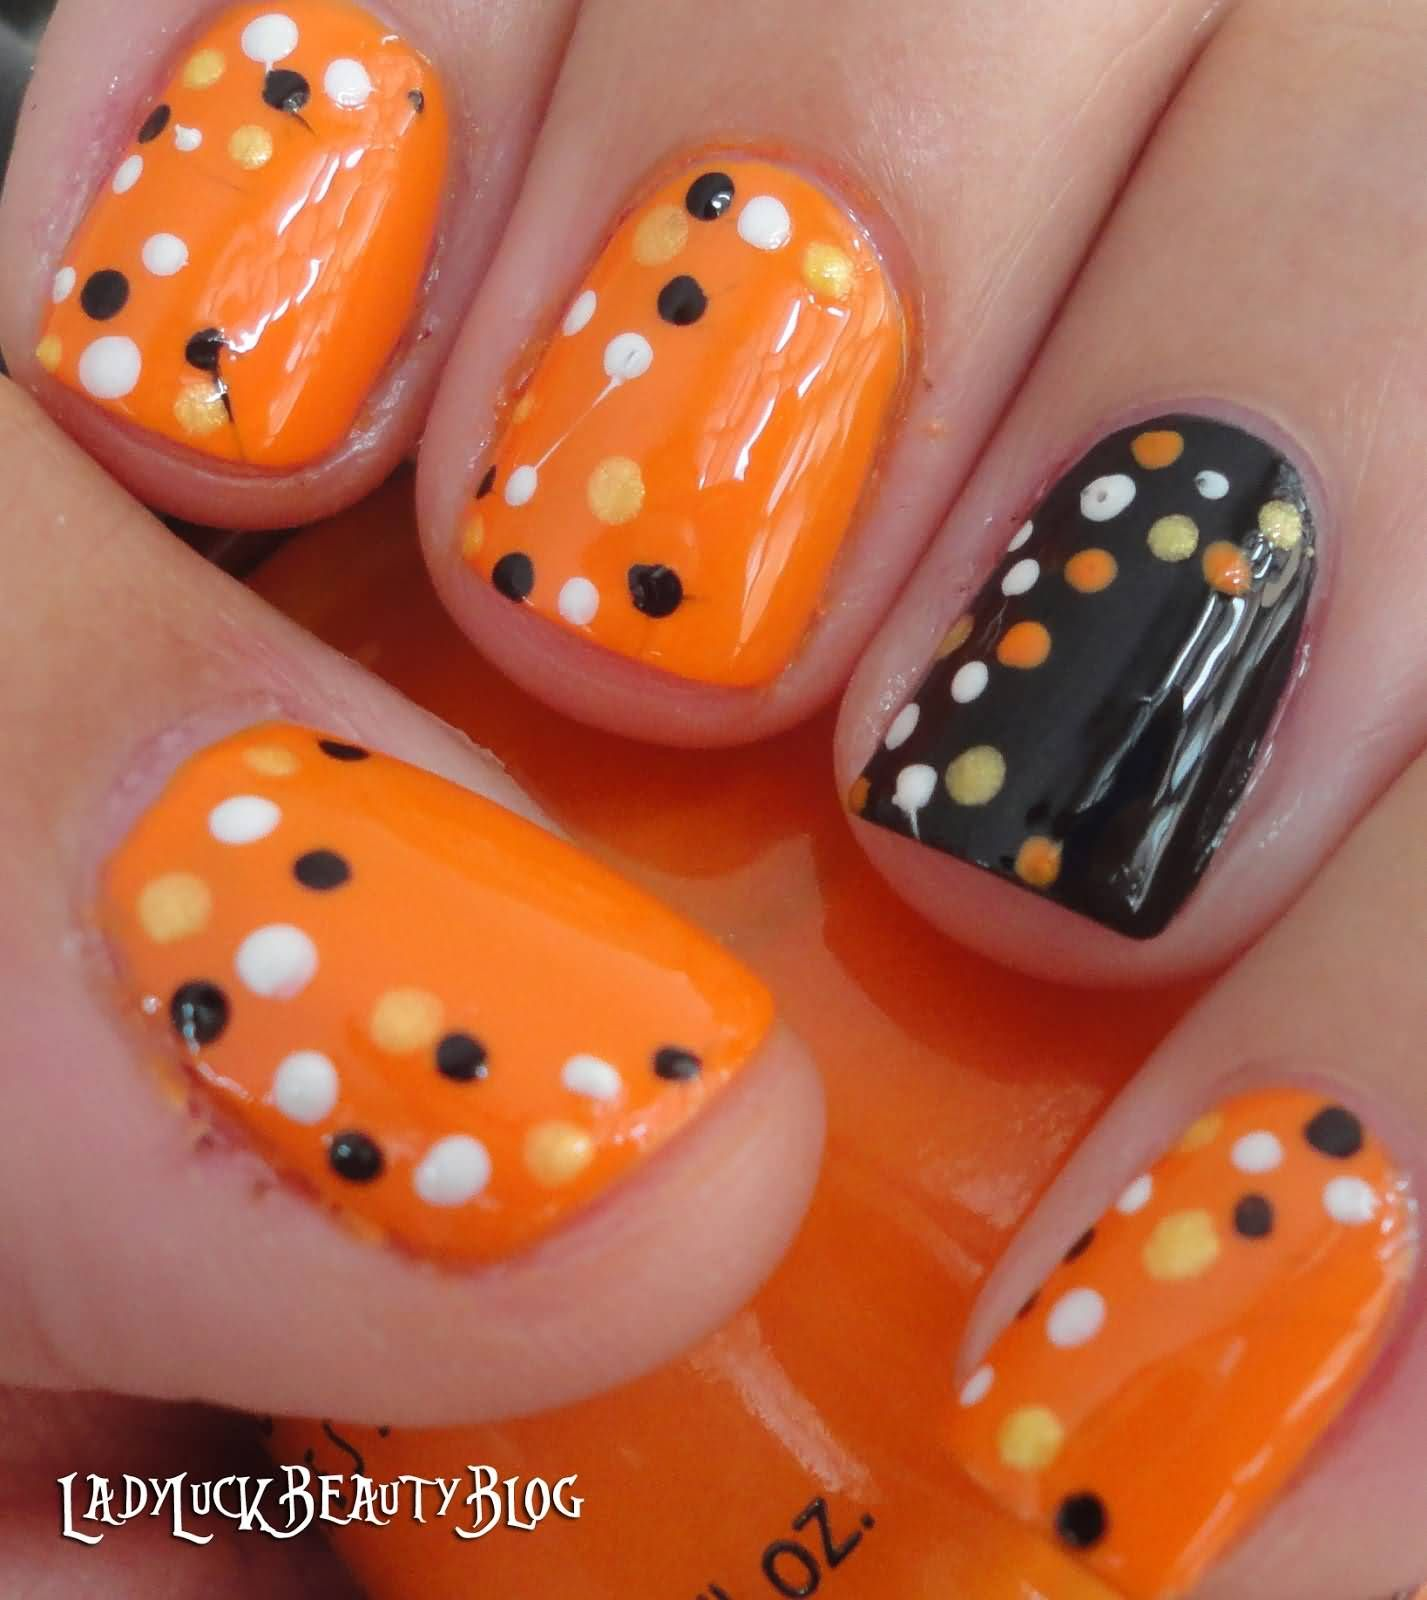 Orange base nails with white black and yellow dots design nail art